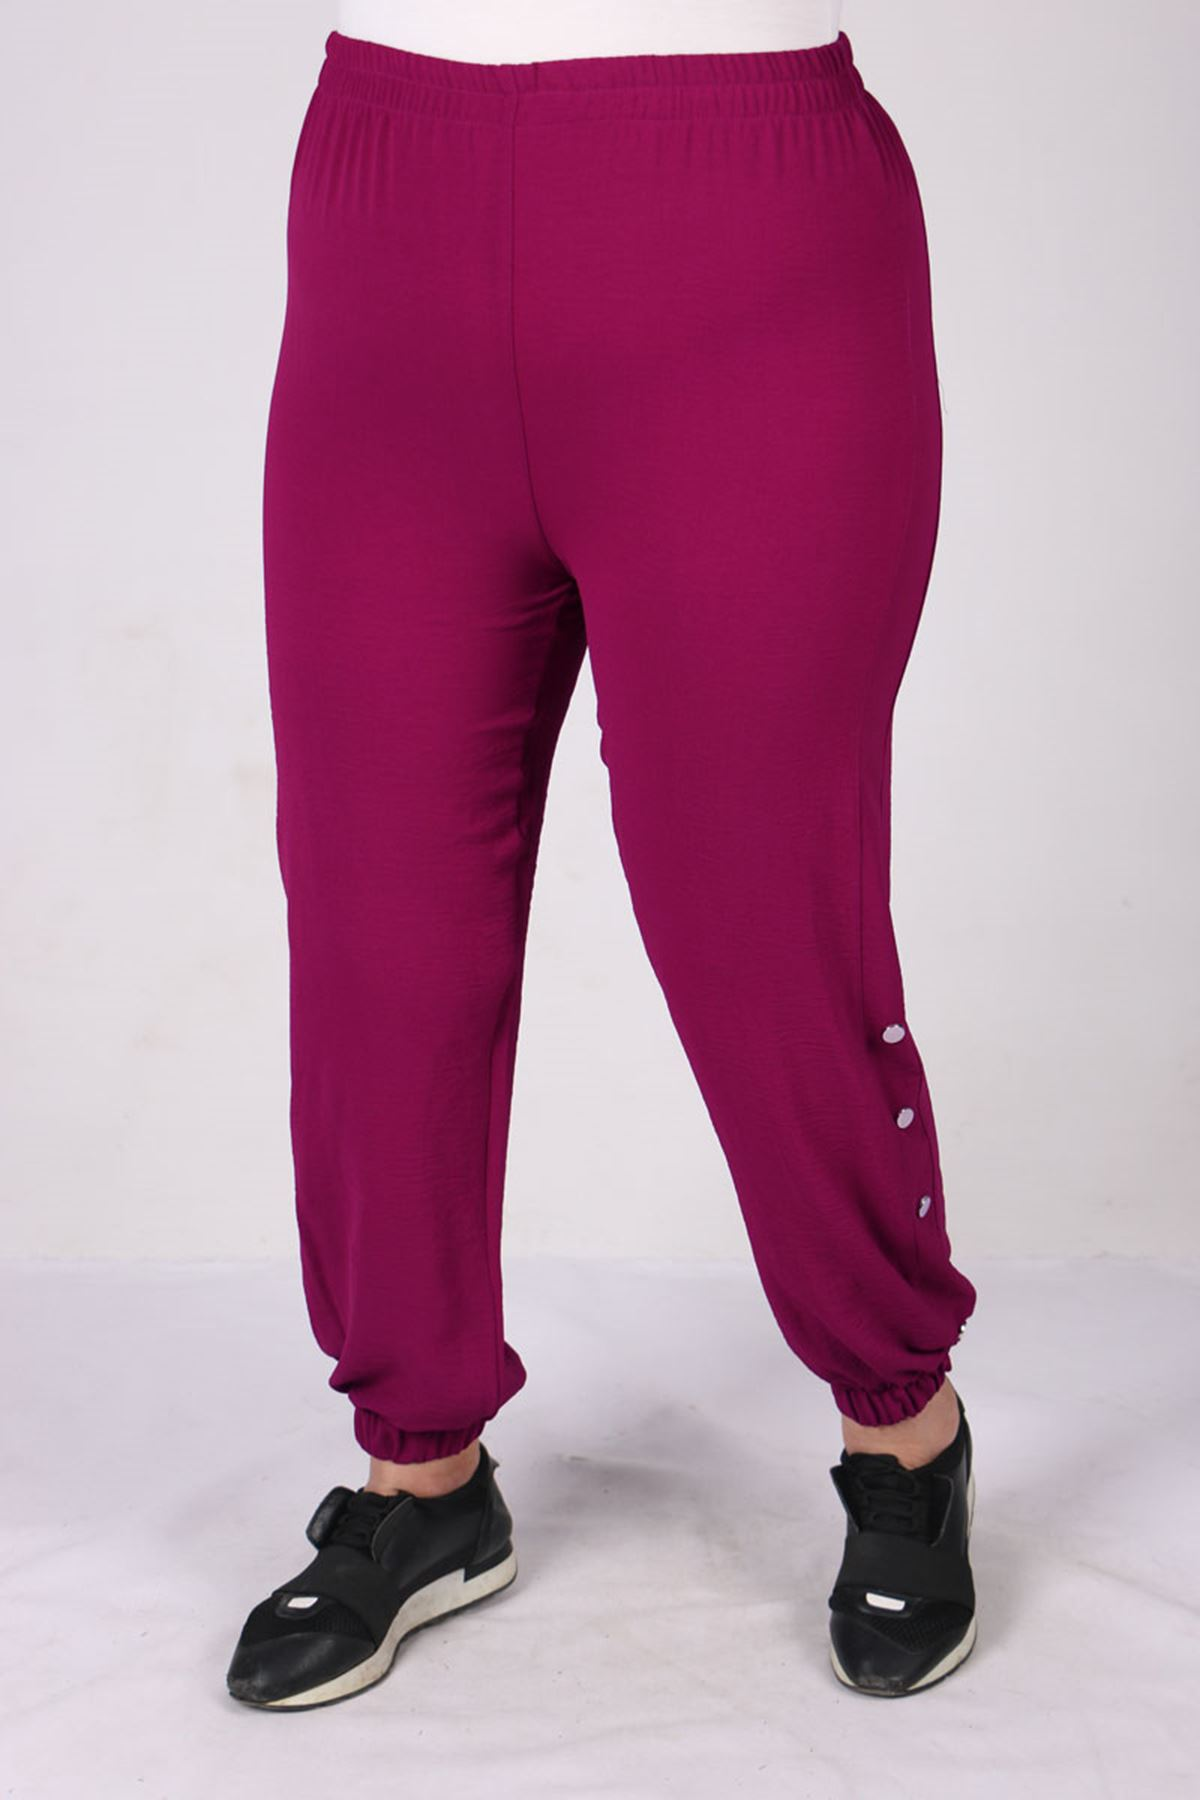 7699 Plus Size Snap Fastener Two Piece Set with Pants - Plum